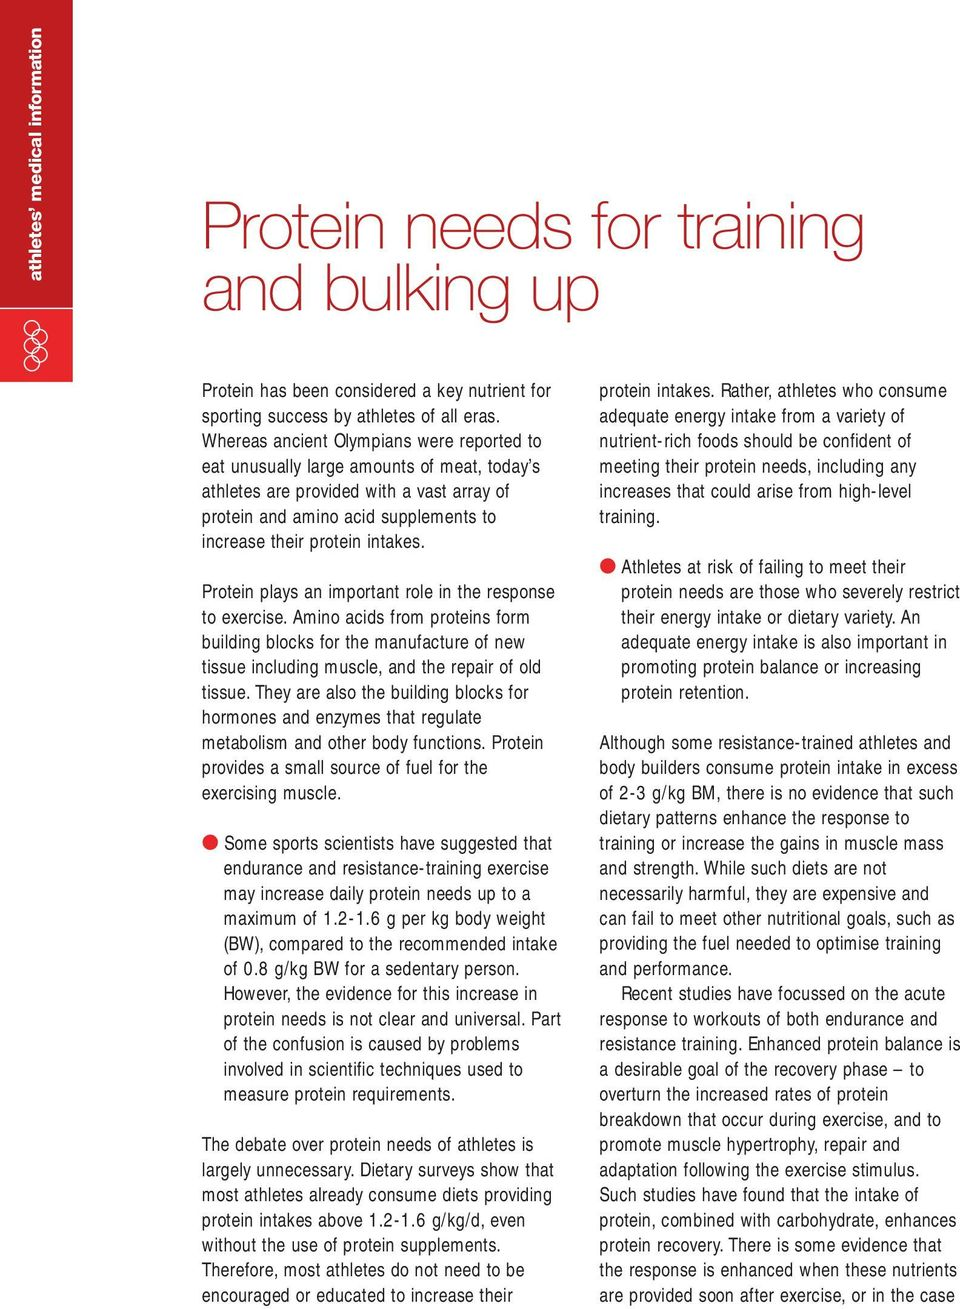 Protein plays an important role in the response to exercise. Amino acids from proteins form building blocks for the manufacture of new tissue including muscle, and the repair of old tissue.